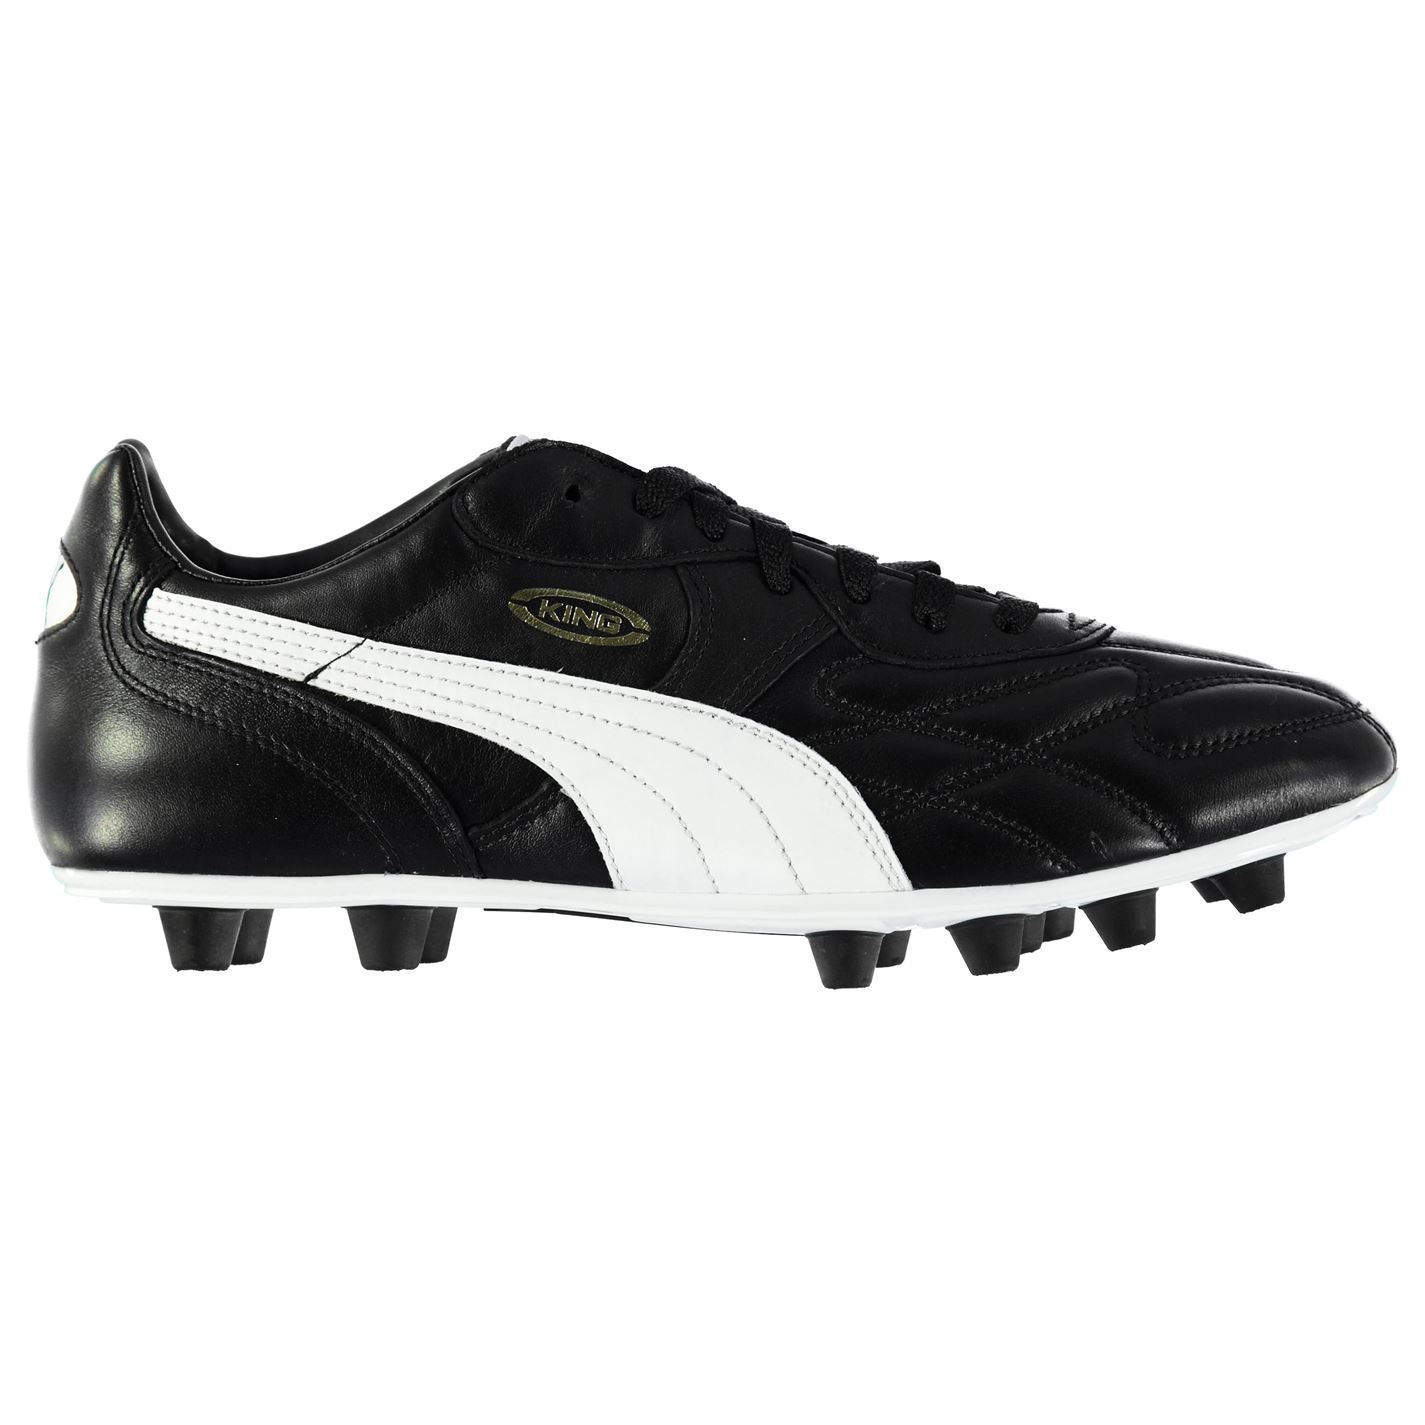 4e3143a9e8e724 ... Puma King Top di FG Firm Ground Football Boots Mens Black Soccer Shoes  Cleats ...